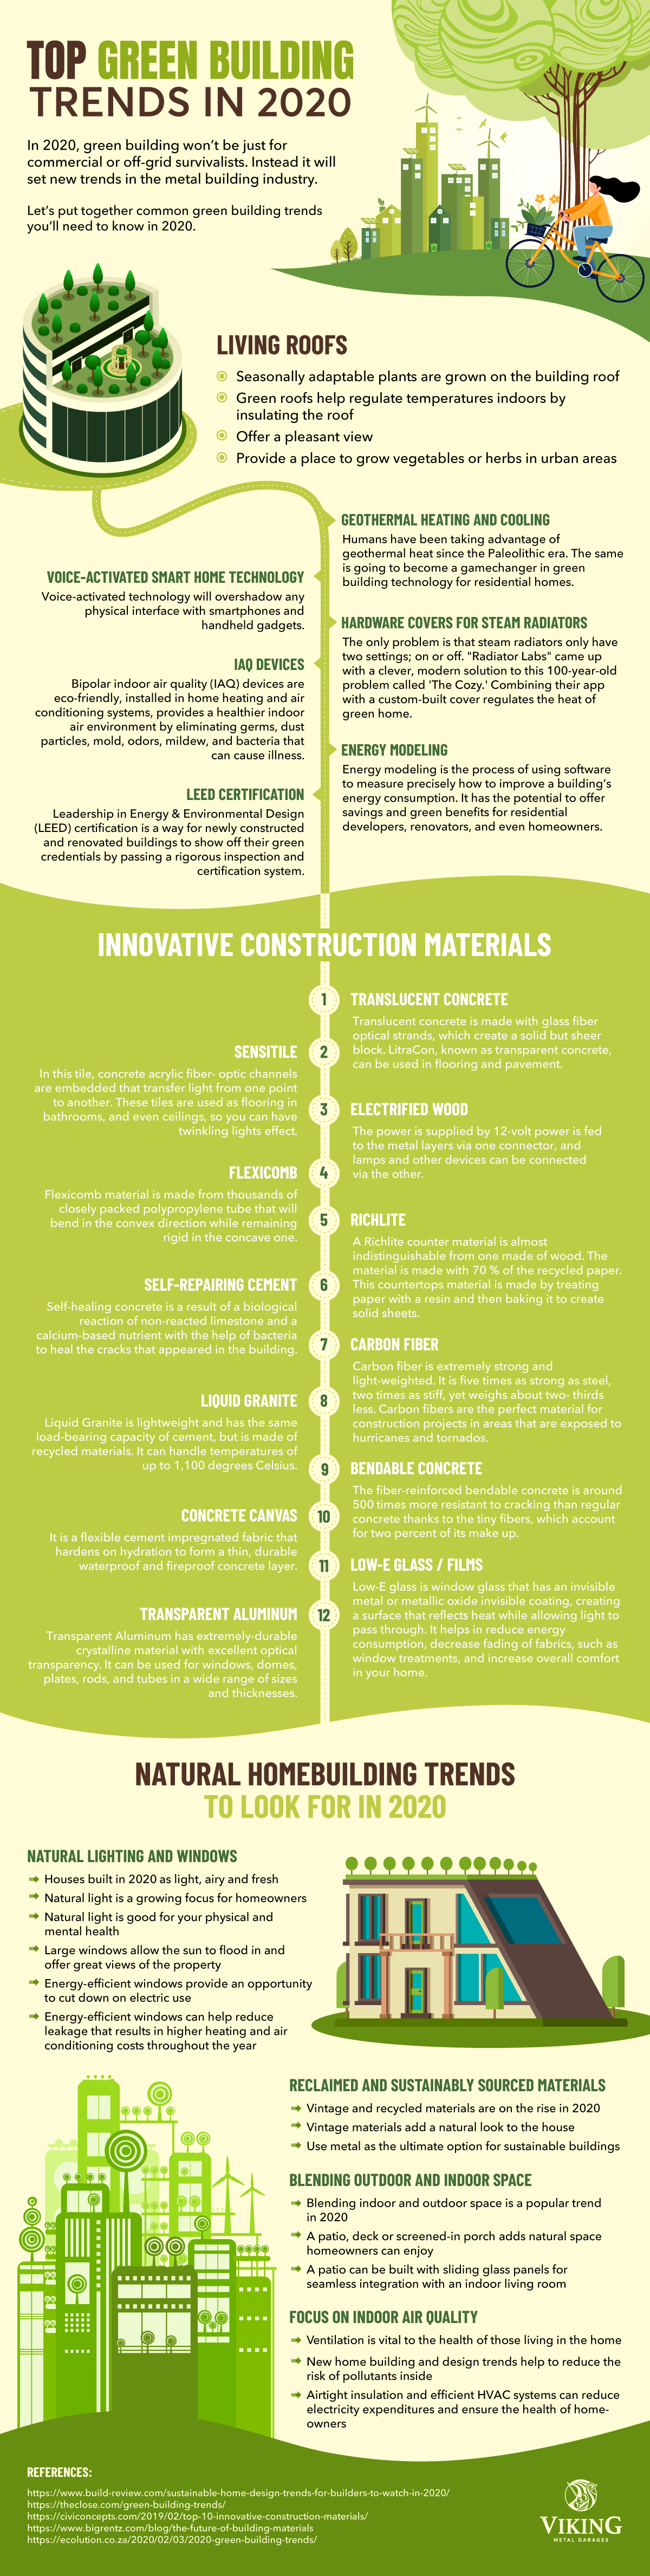 Top Green Building Trends in 2020 #infographic